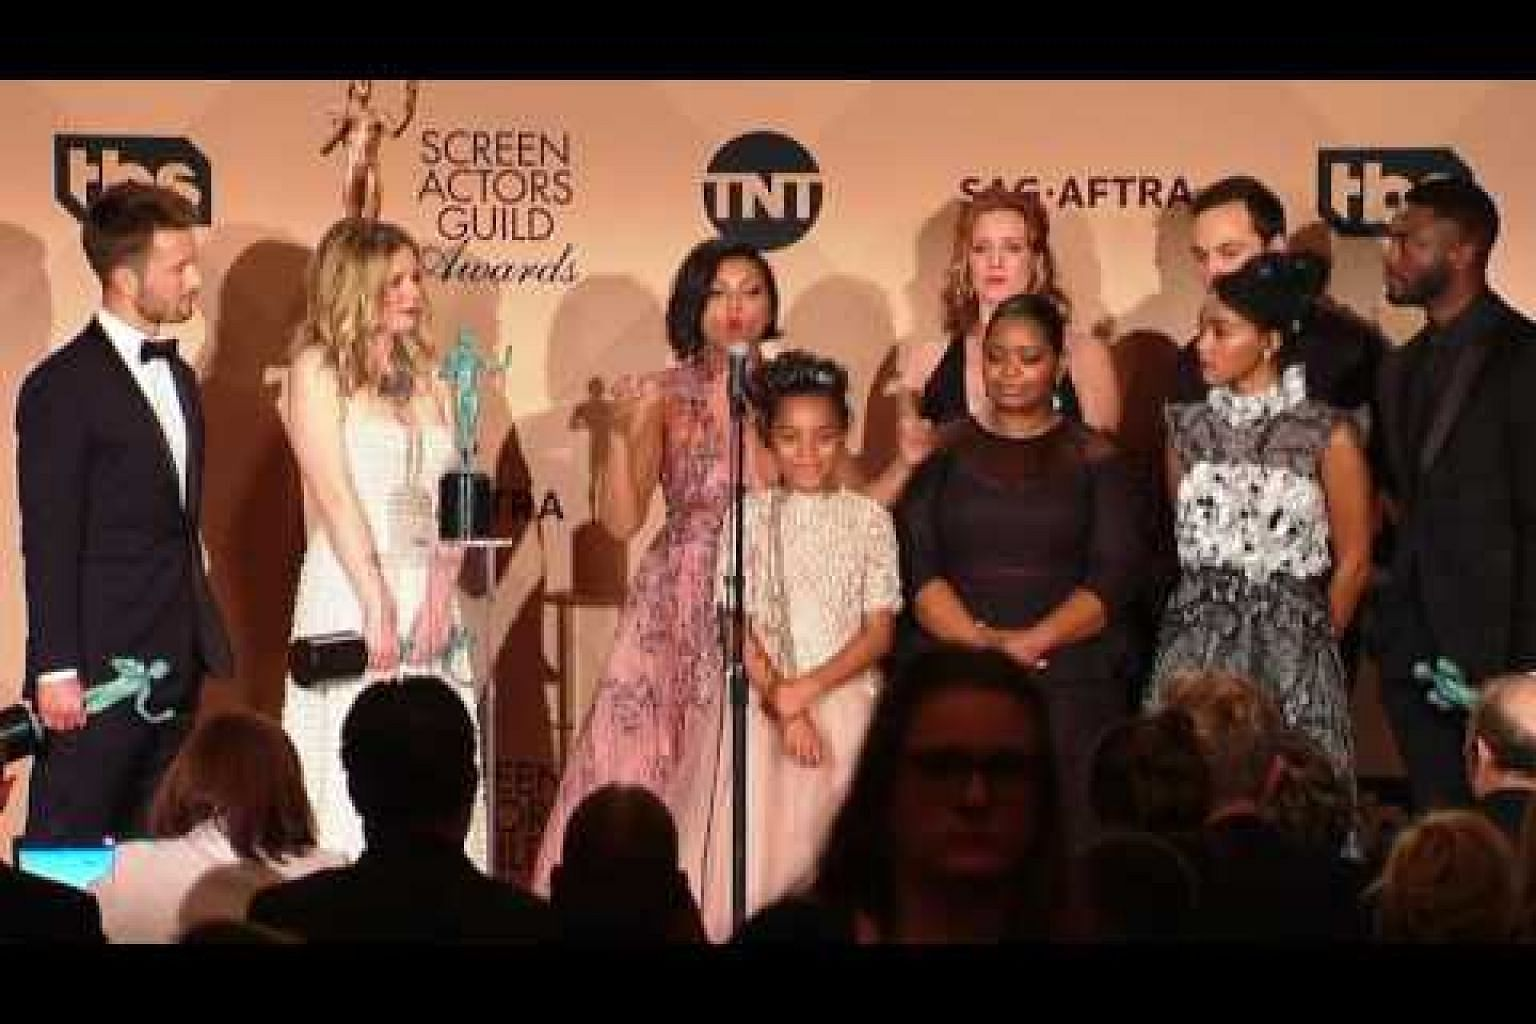 Diversity addressed during awards season